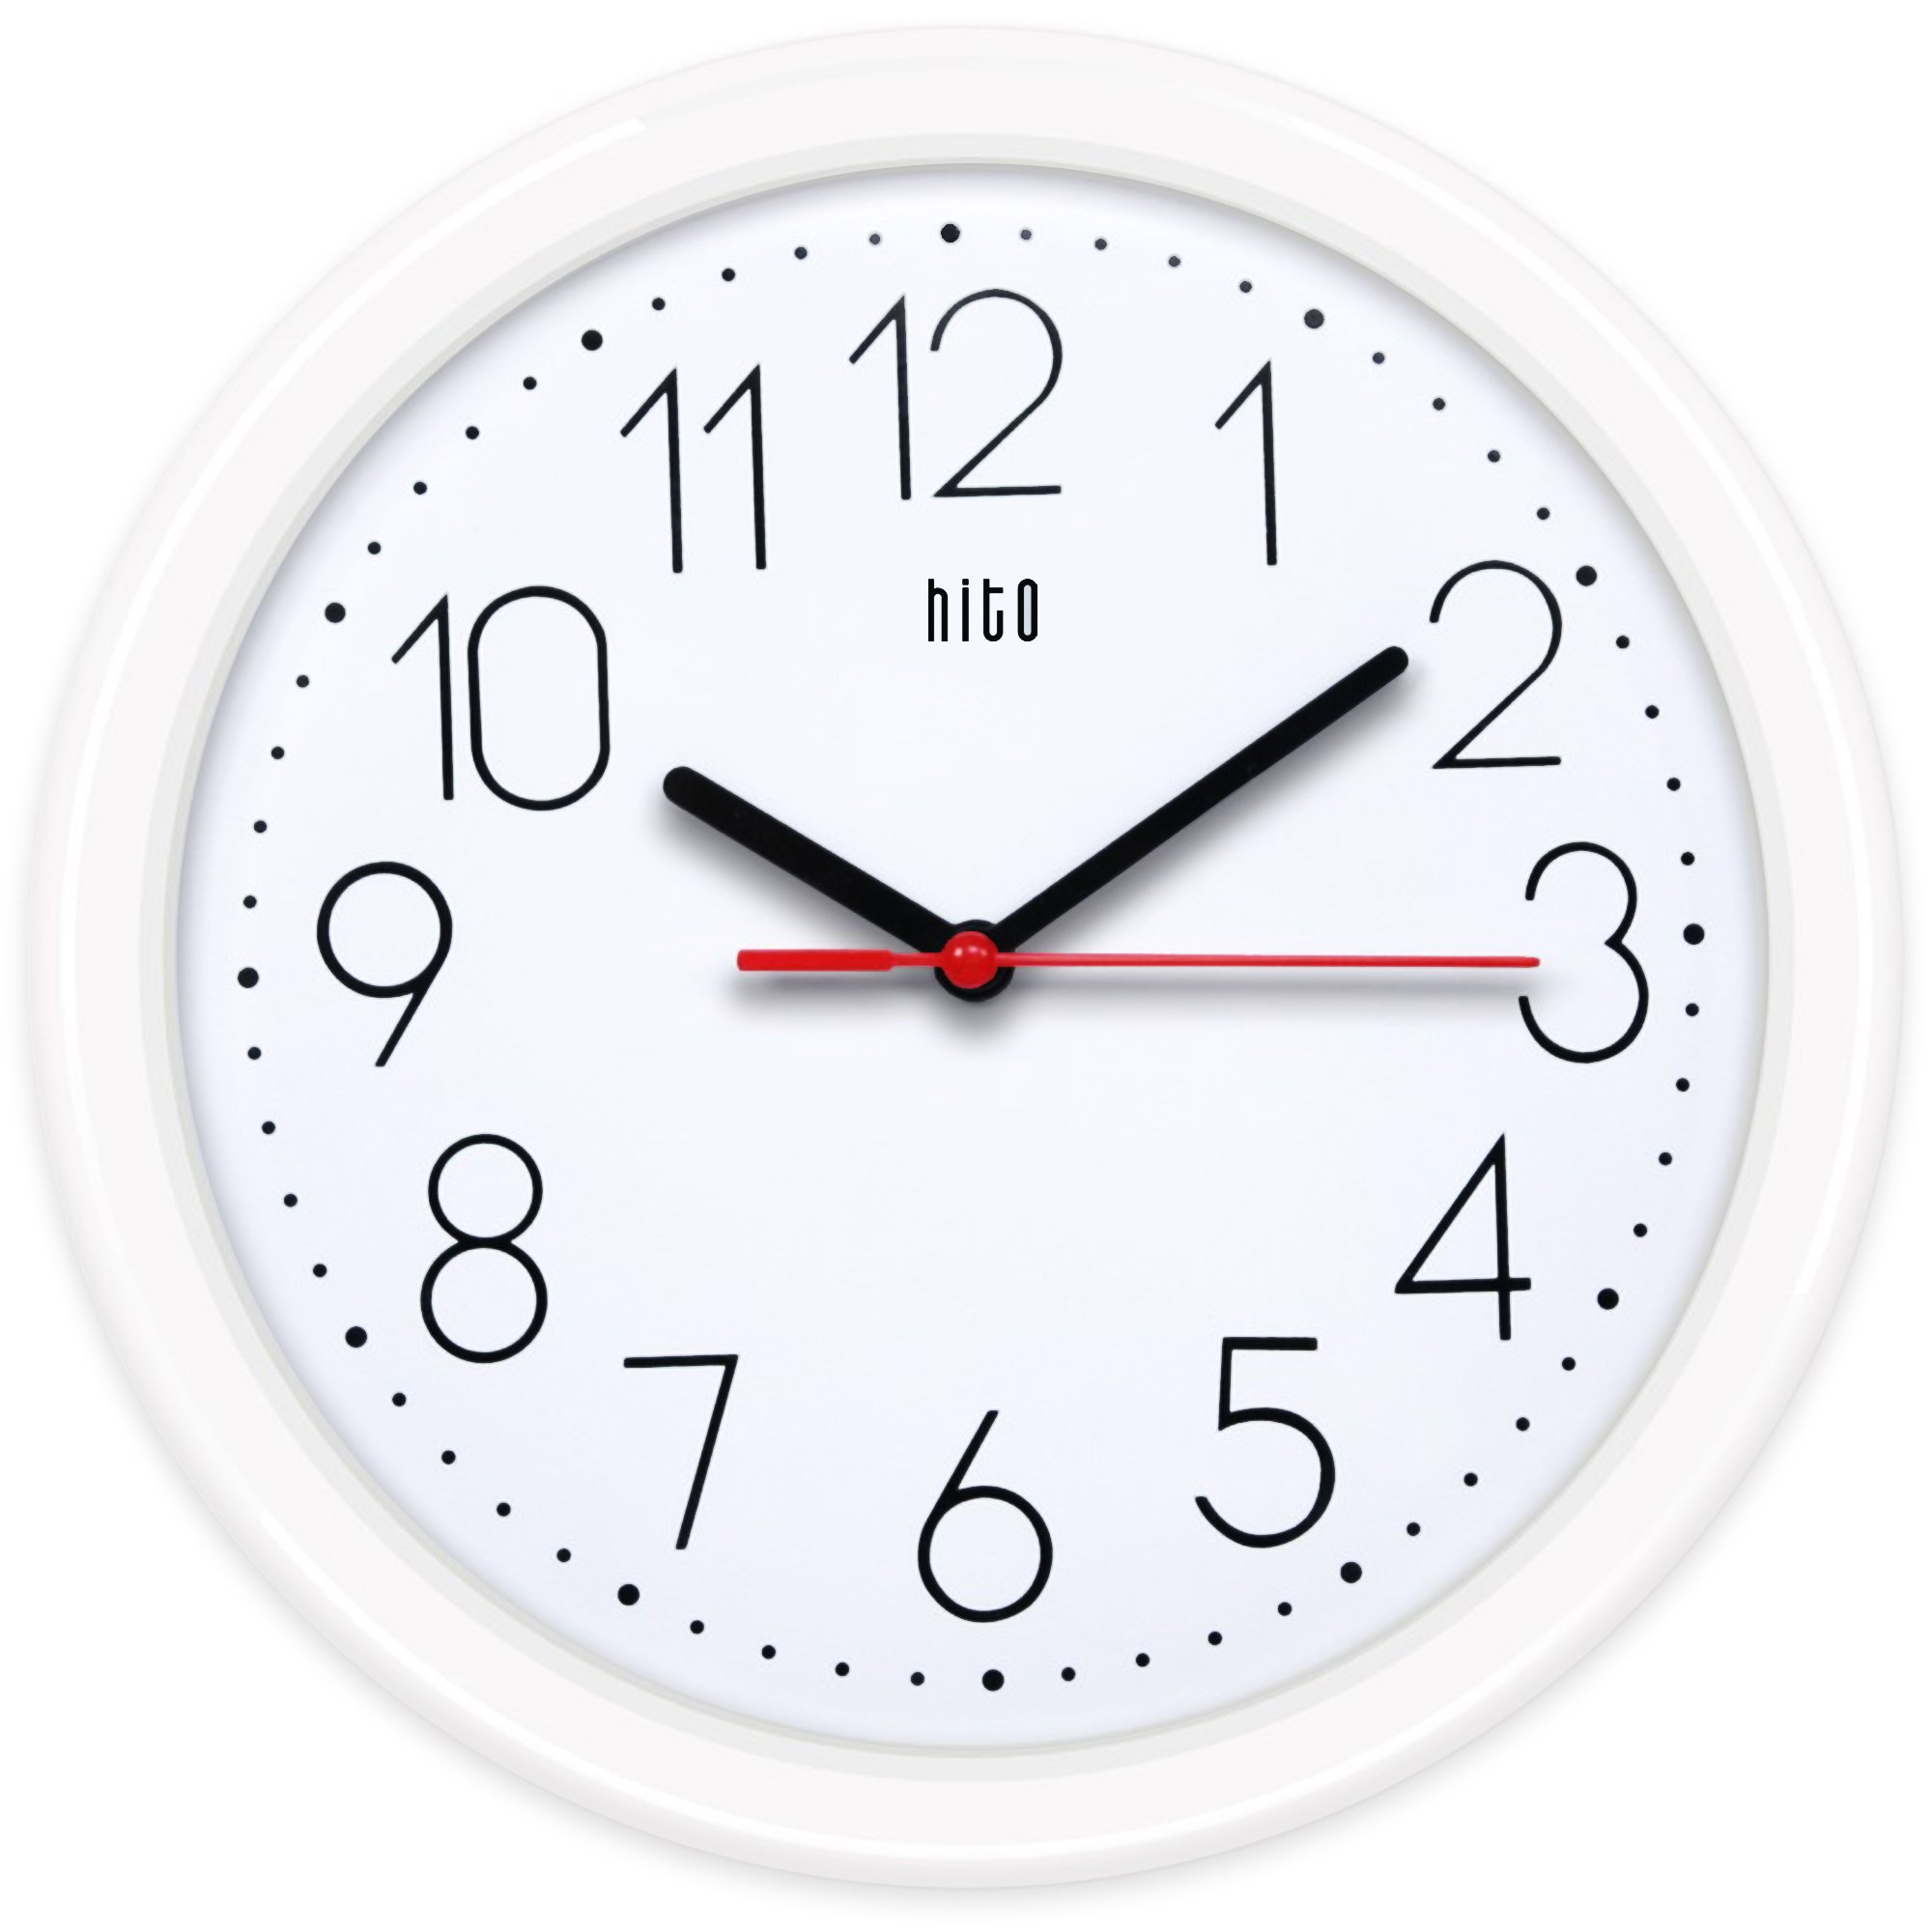 hito Silent Wall Clock Non ticking 10 inch Excellent Accurate Sweep Movement, Decorative for Kitchen, Living Room, Bathroom, Bedroom, Office (White)